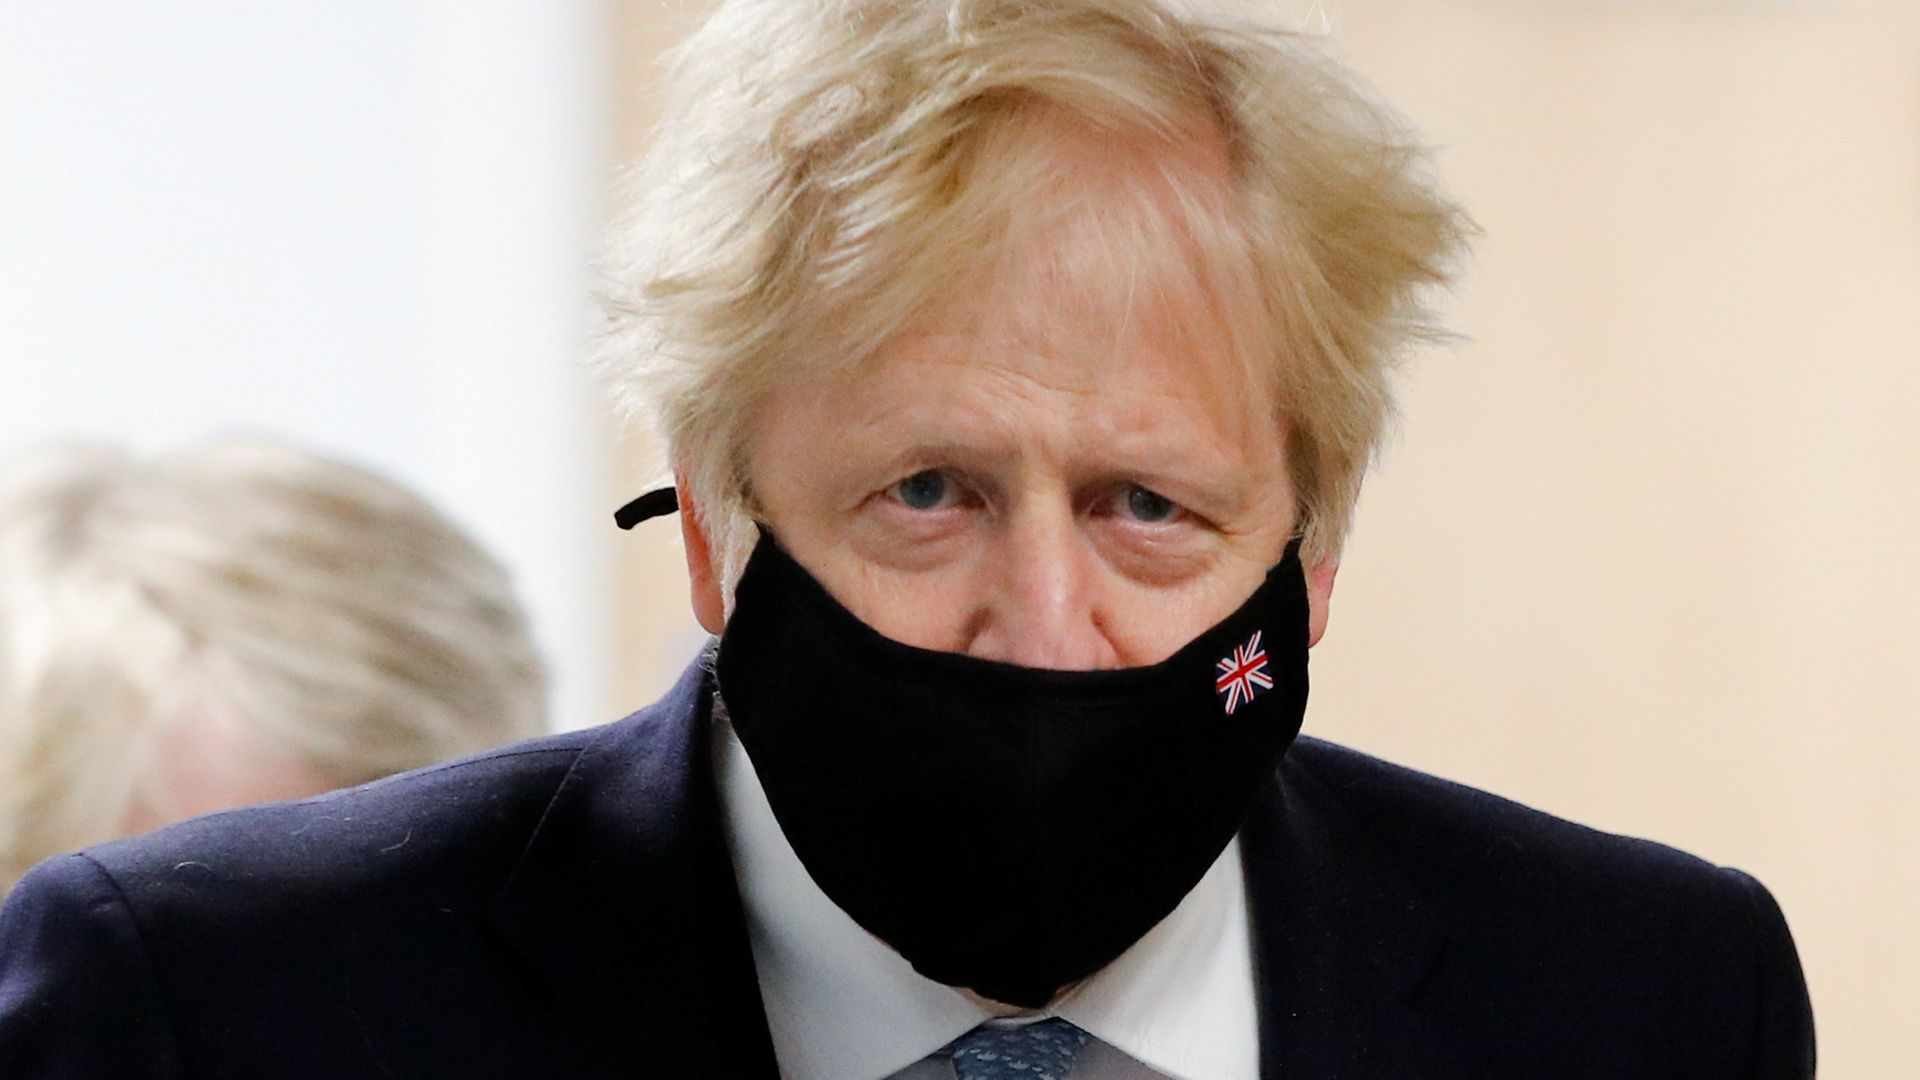 Prime minister Boris Johnson said the election results in Hartlepool were 'encouraging' - Credit: PA